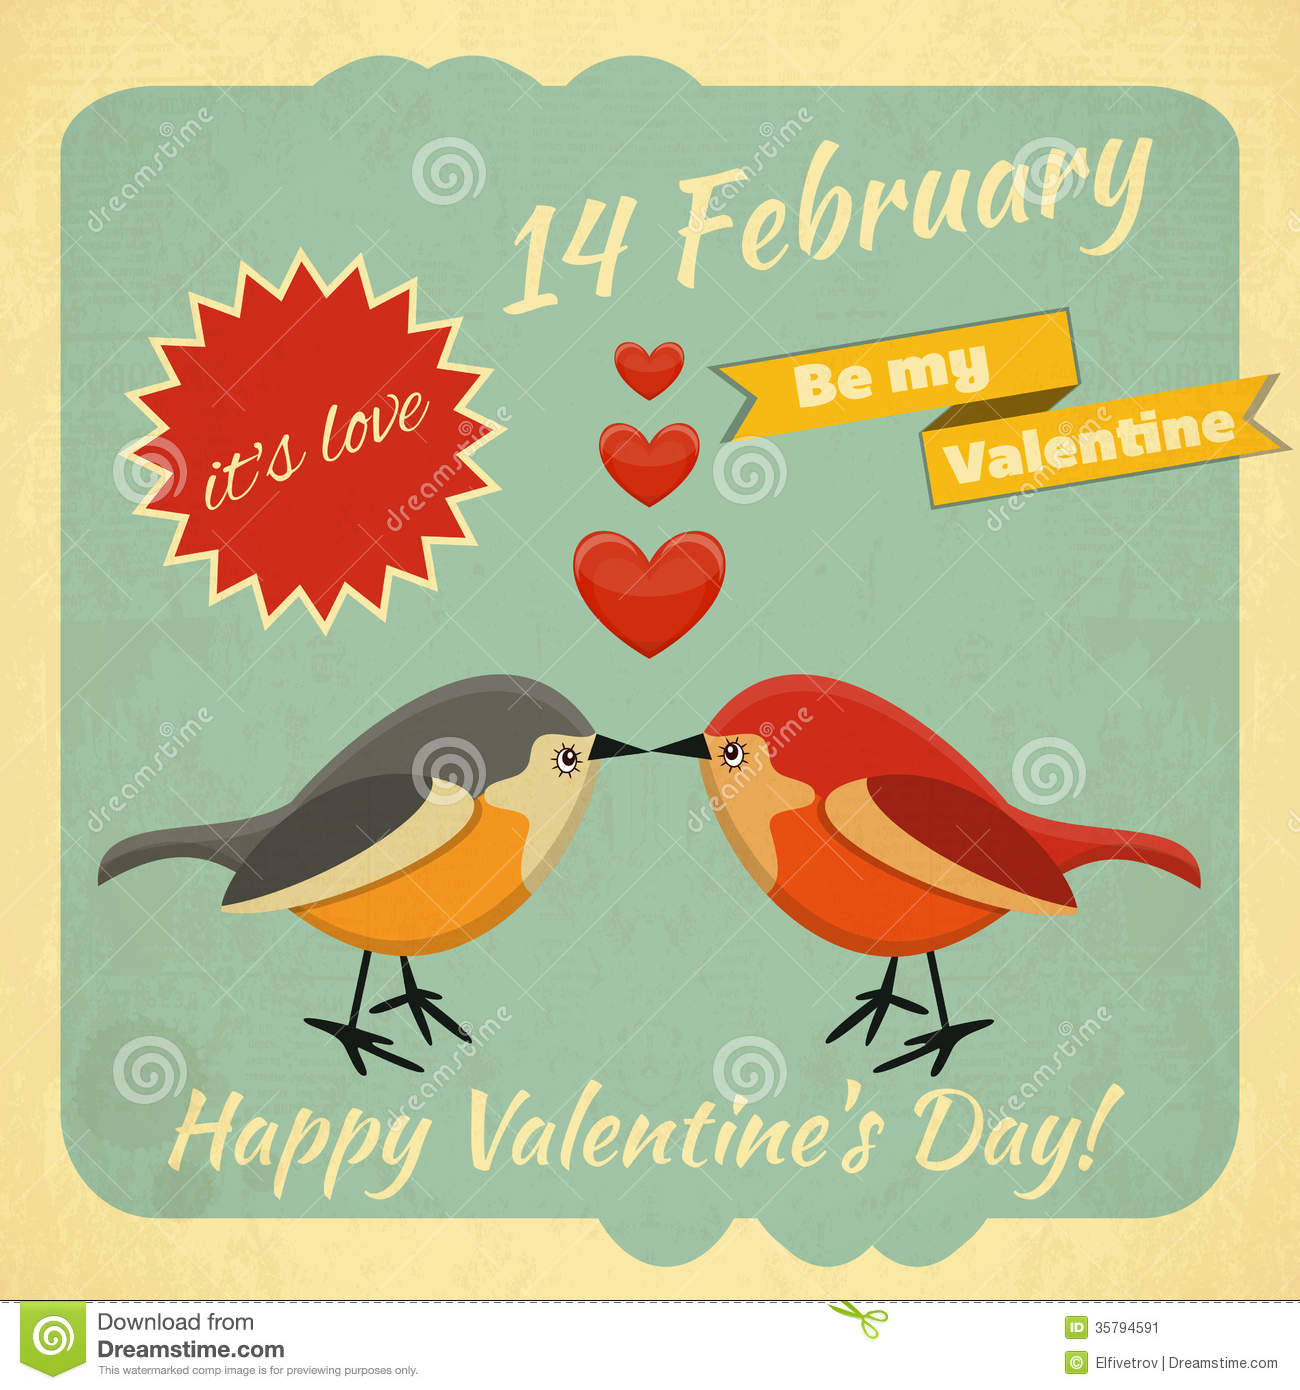 Valentine S Day Vintage Toys : Vintage valentines day card stock vector illustration of